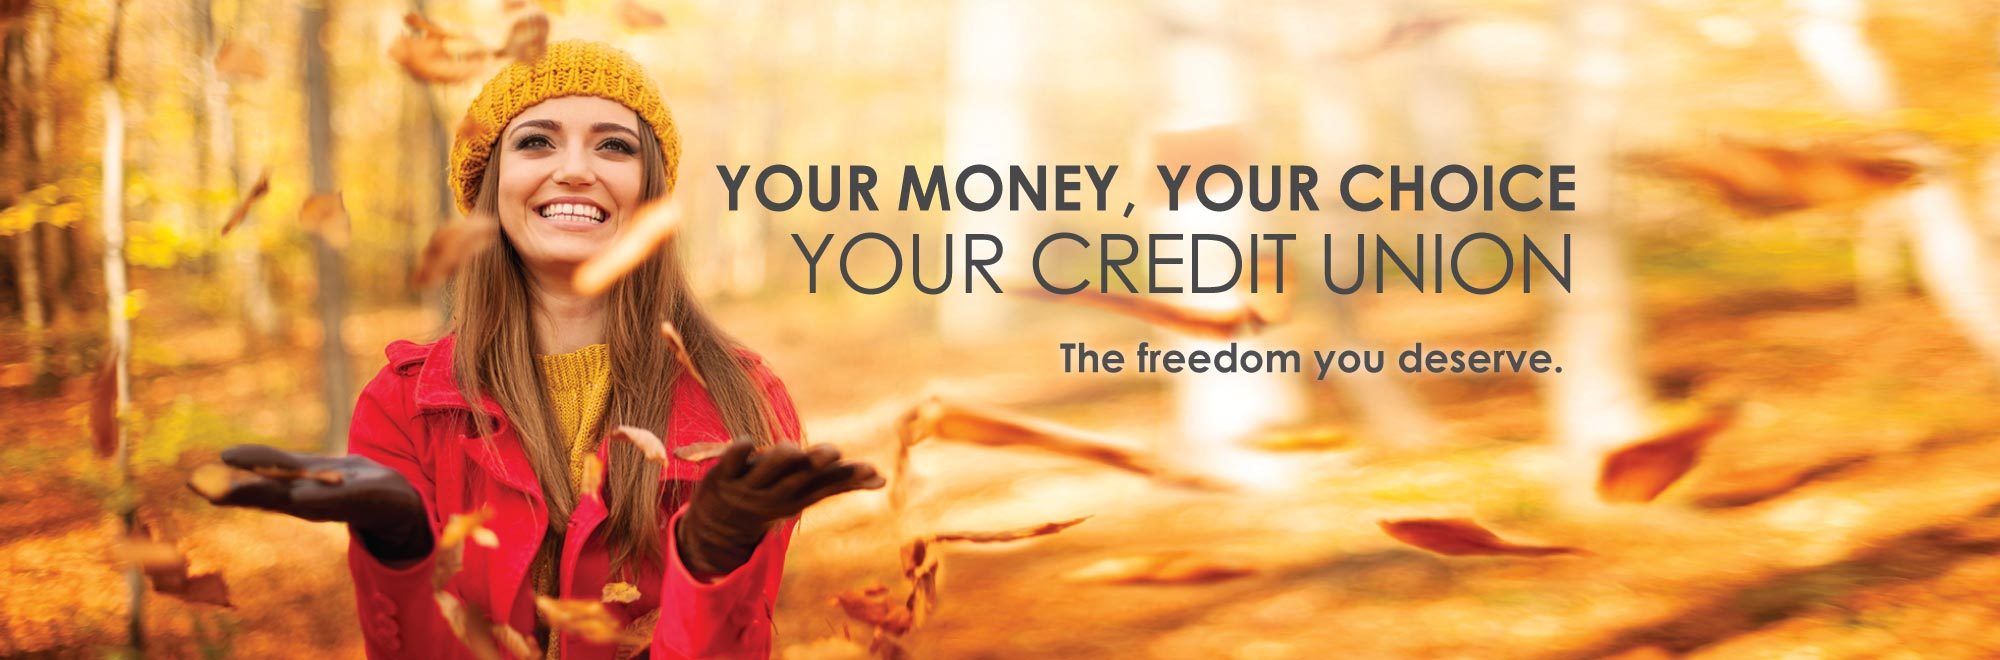 Your Money, Your Choice, Your Credit Union - The Freedom You Deserve